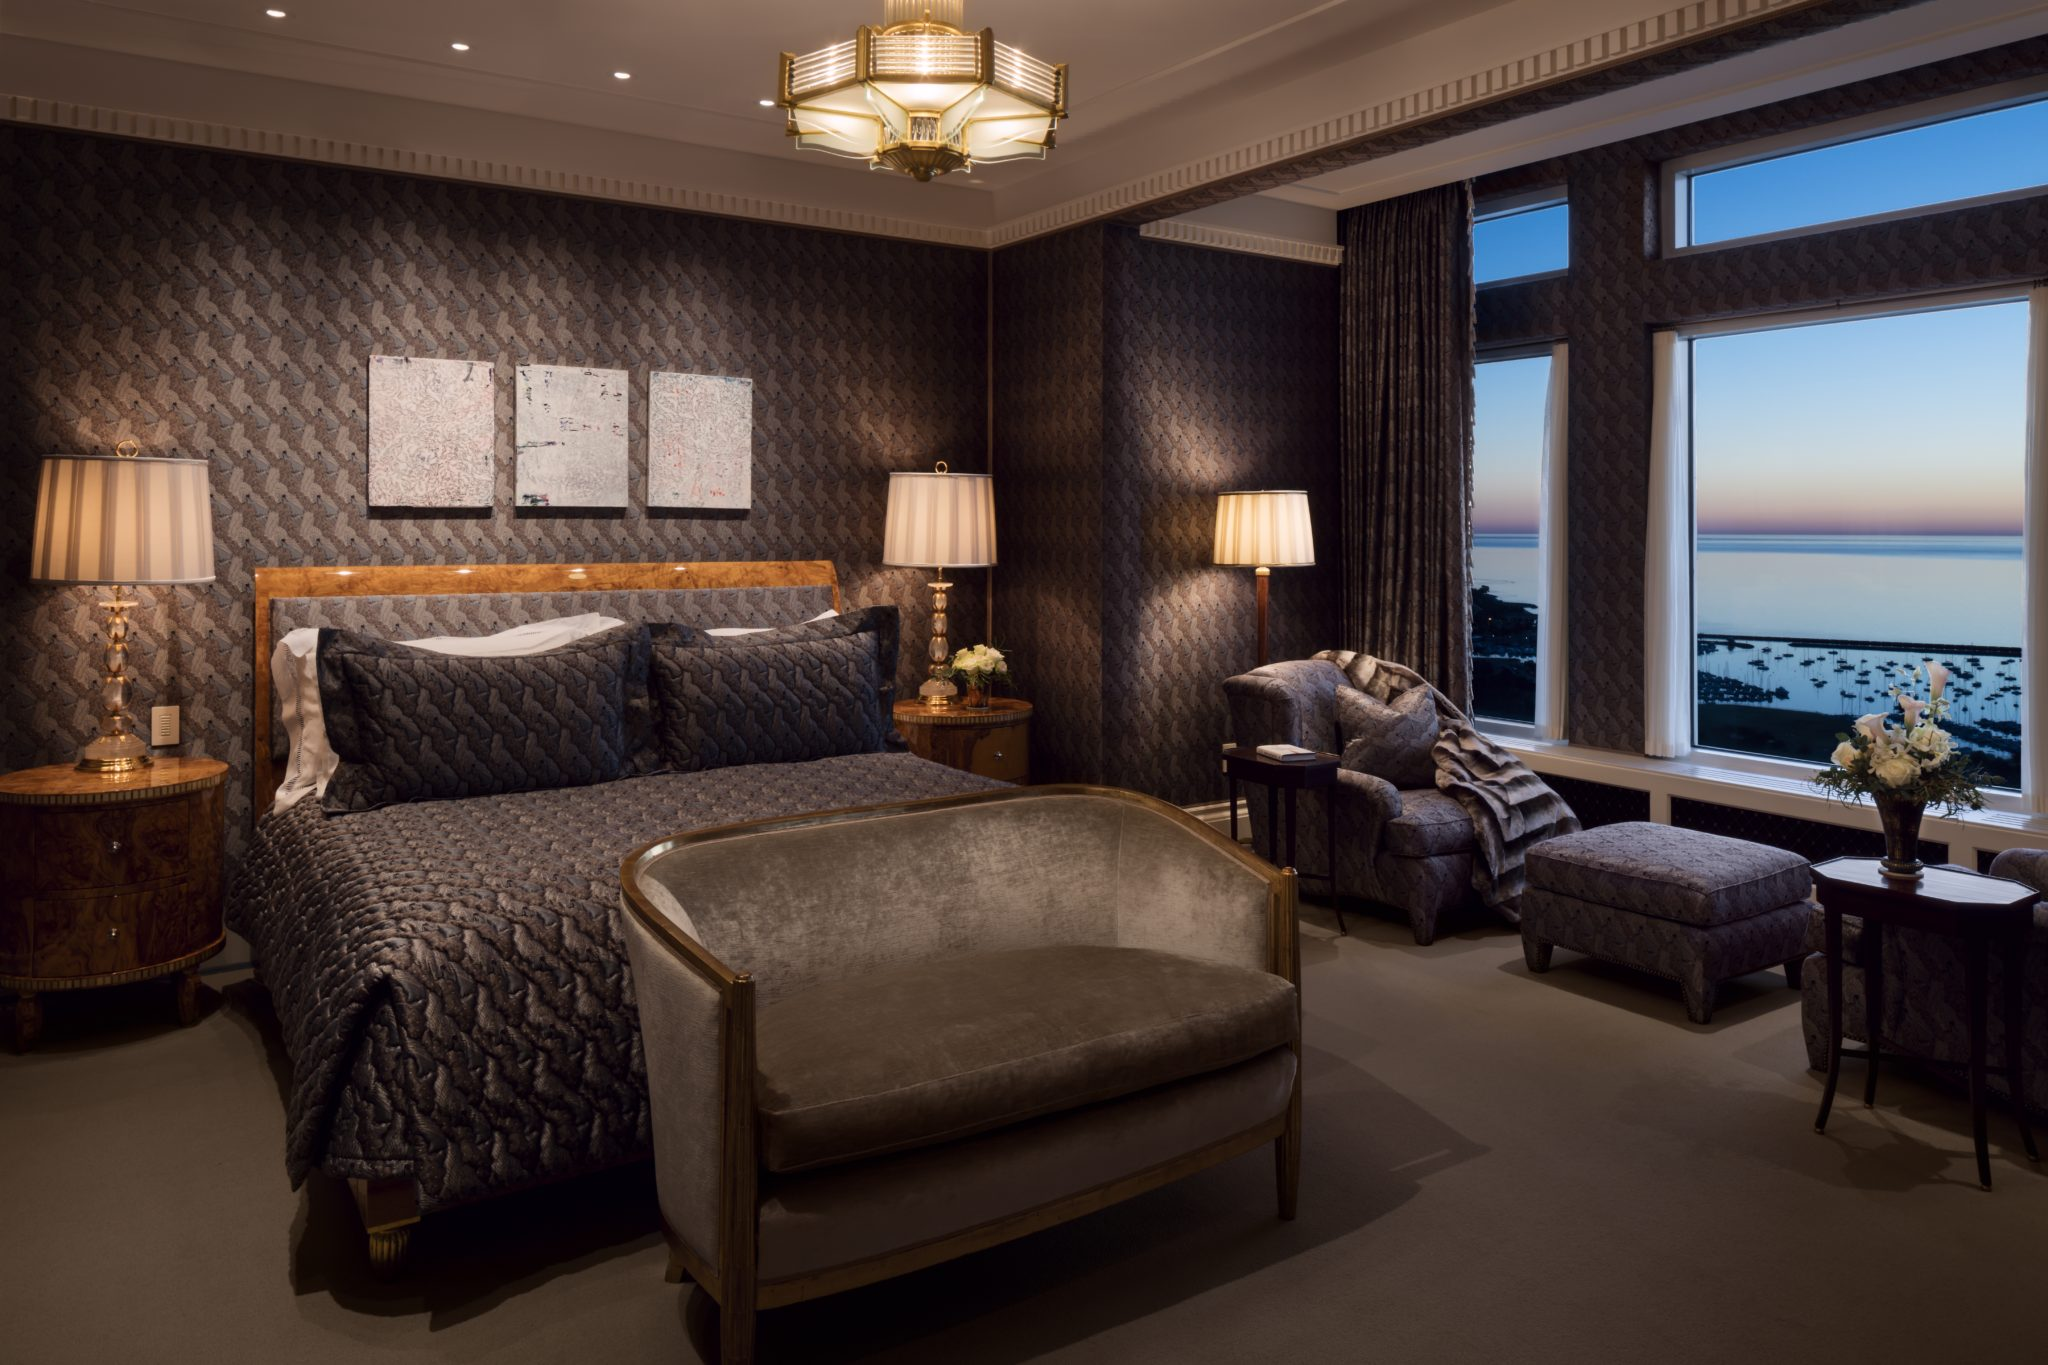 The master bedroom with water views is decorated in smoky textures and tones. By Wade Weissmann Architecture Inc.